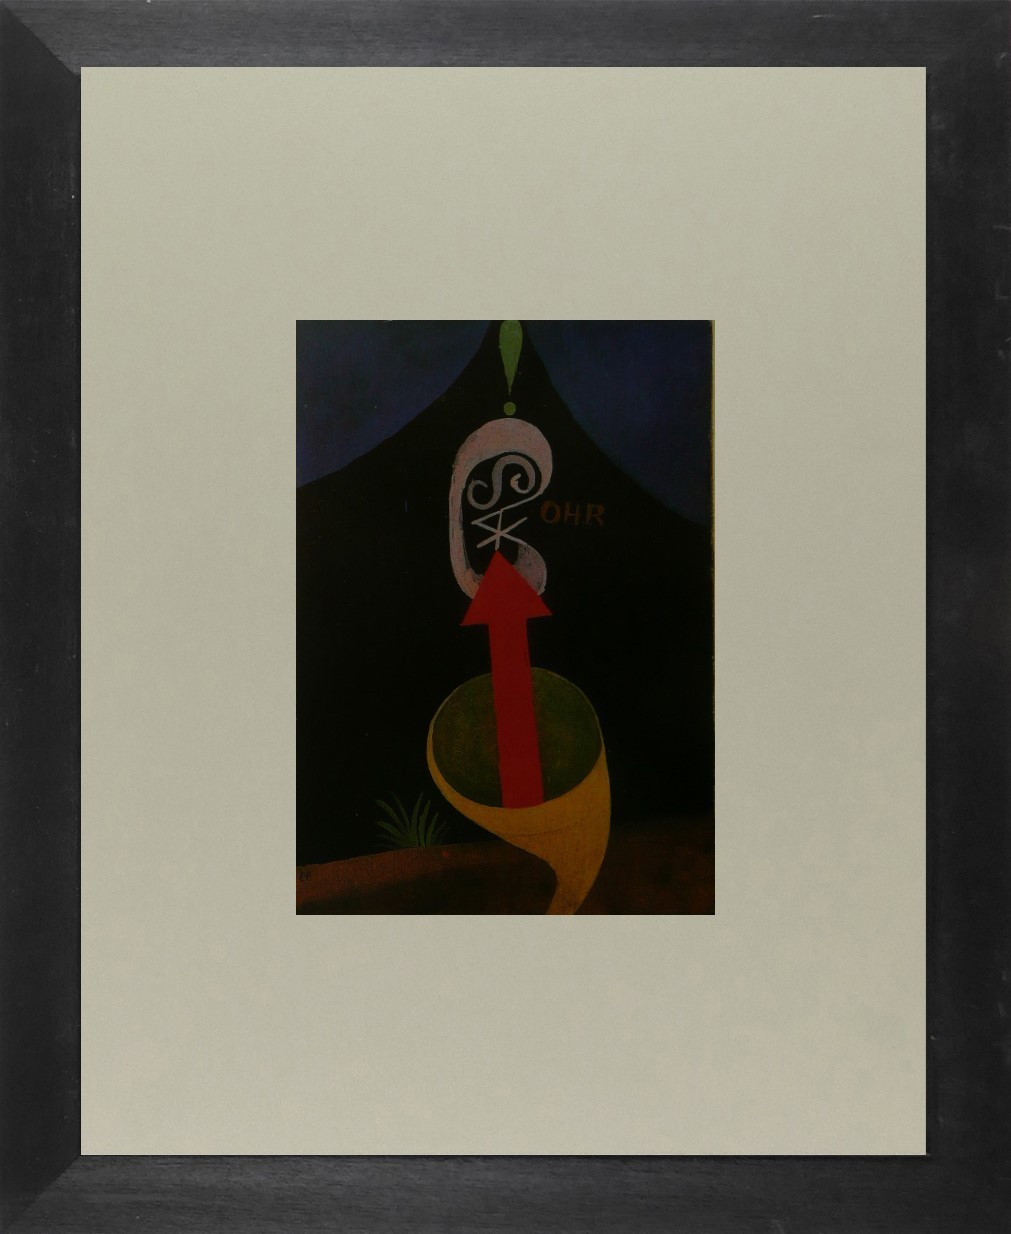 Roll of sound - (Red arrow emerging from horn) - (Bauhaus) - Framed Picture 11 x